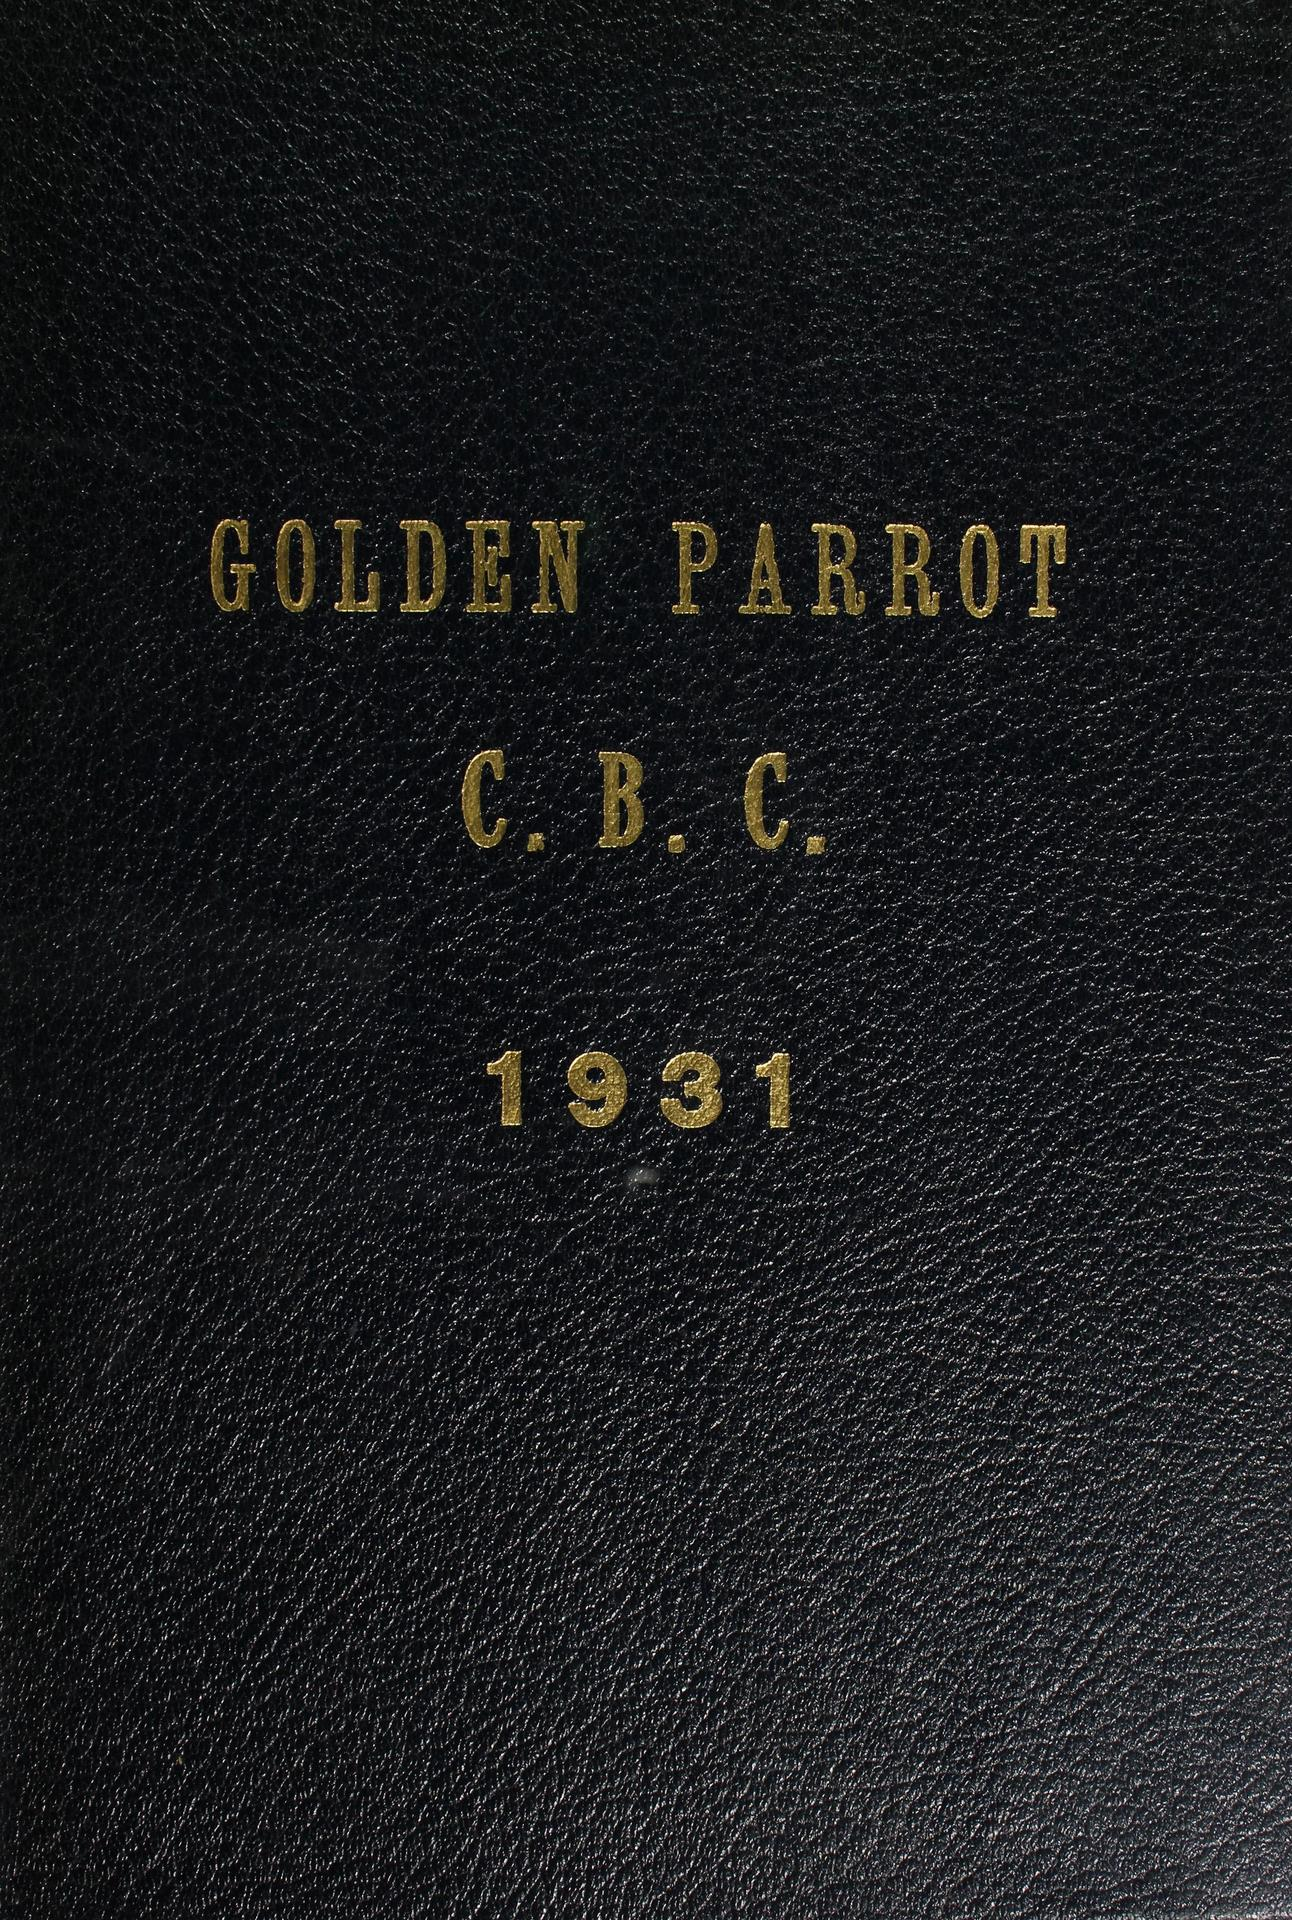 1931 CBC Yearbook